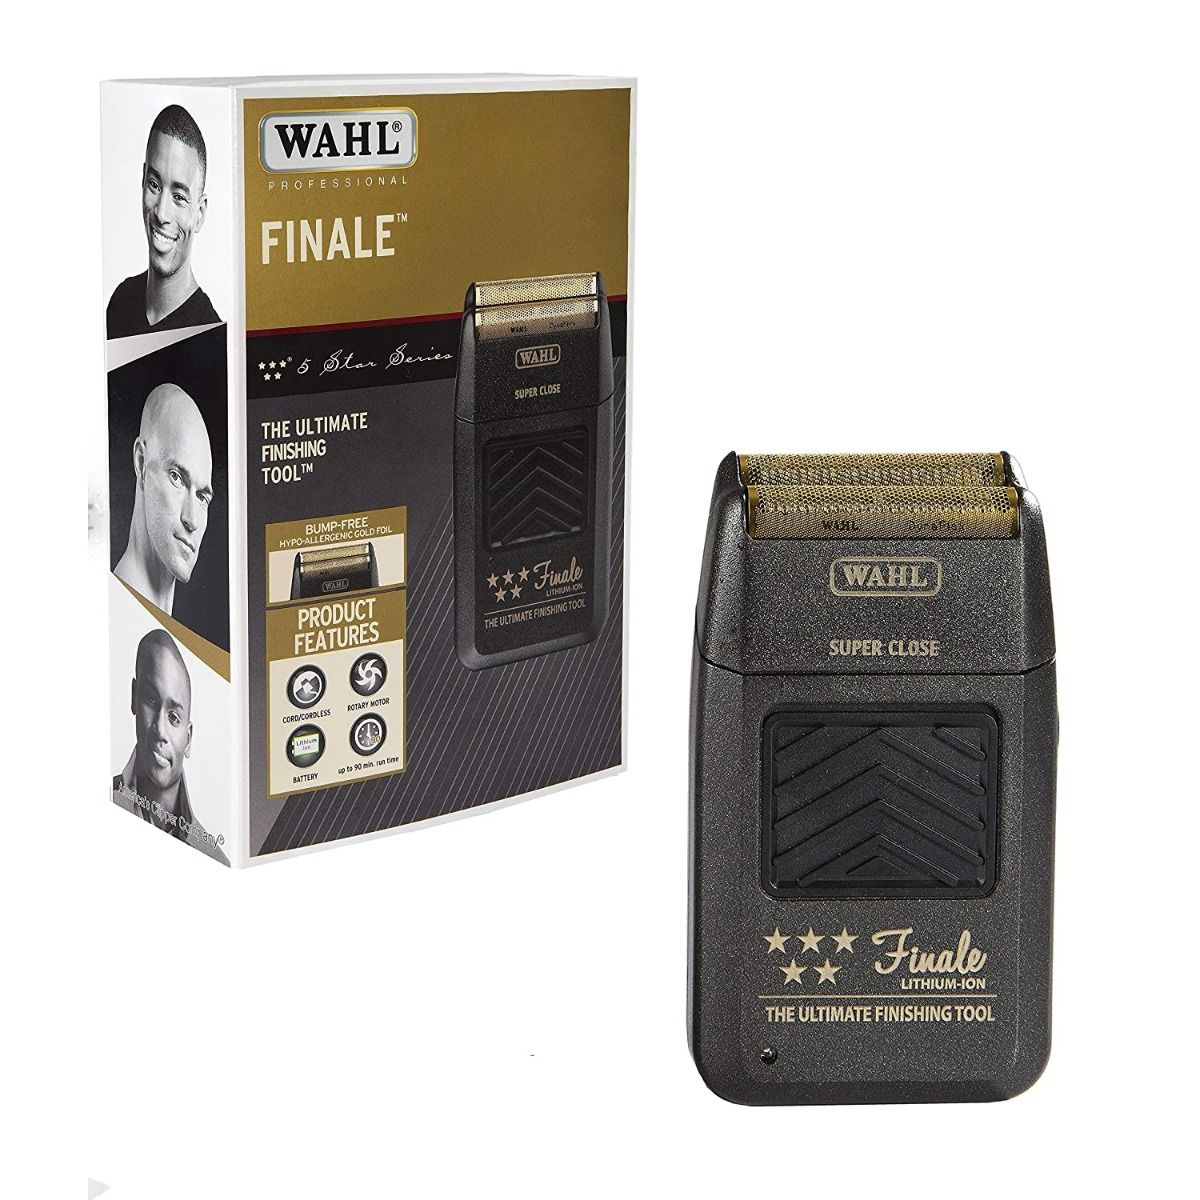 Wahl Professional 1400 Electric Hair Clipper